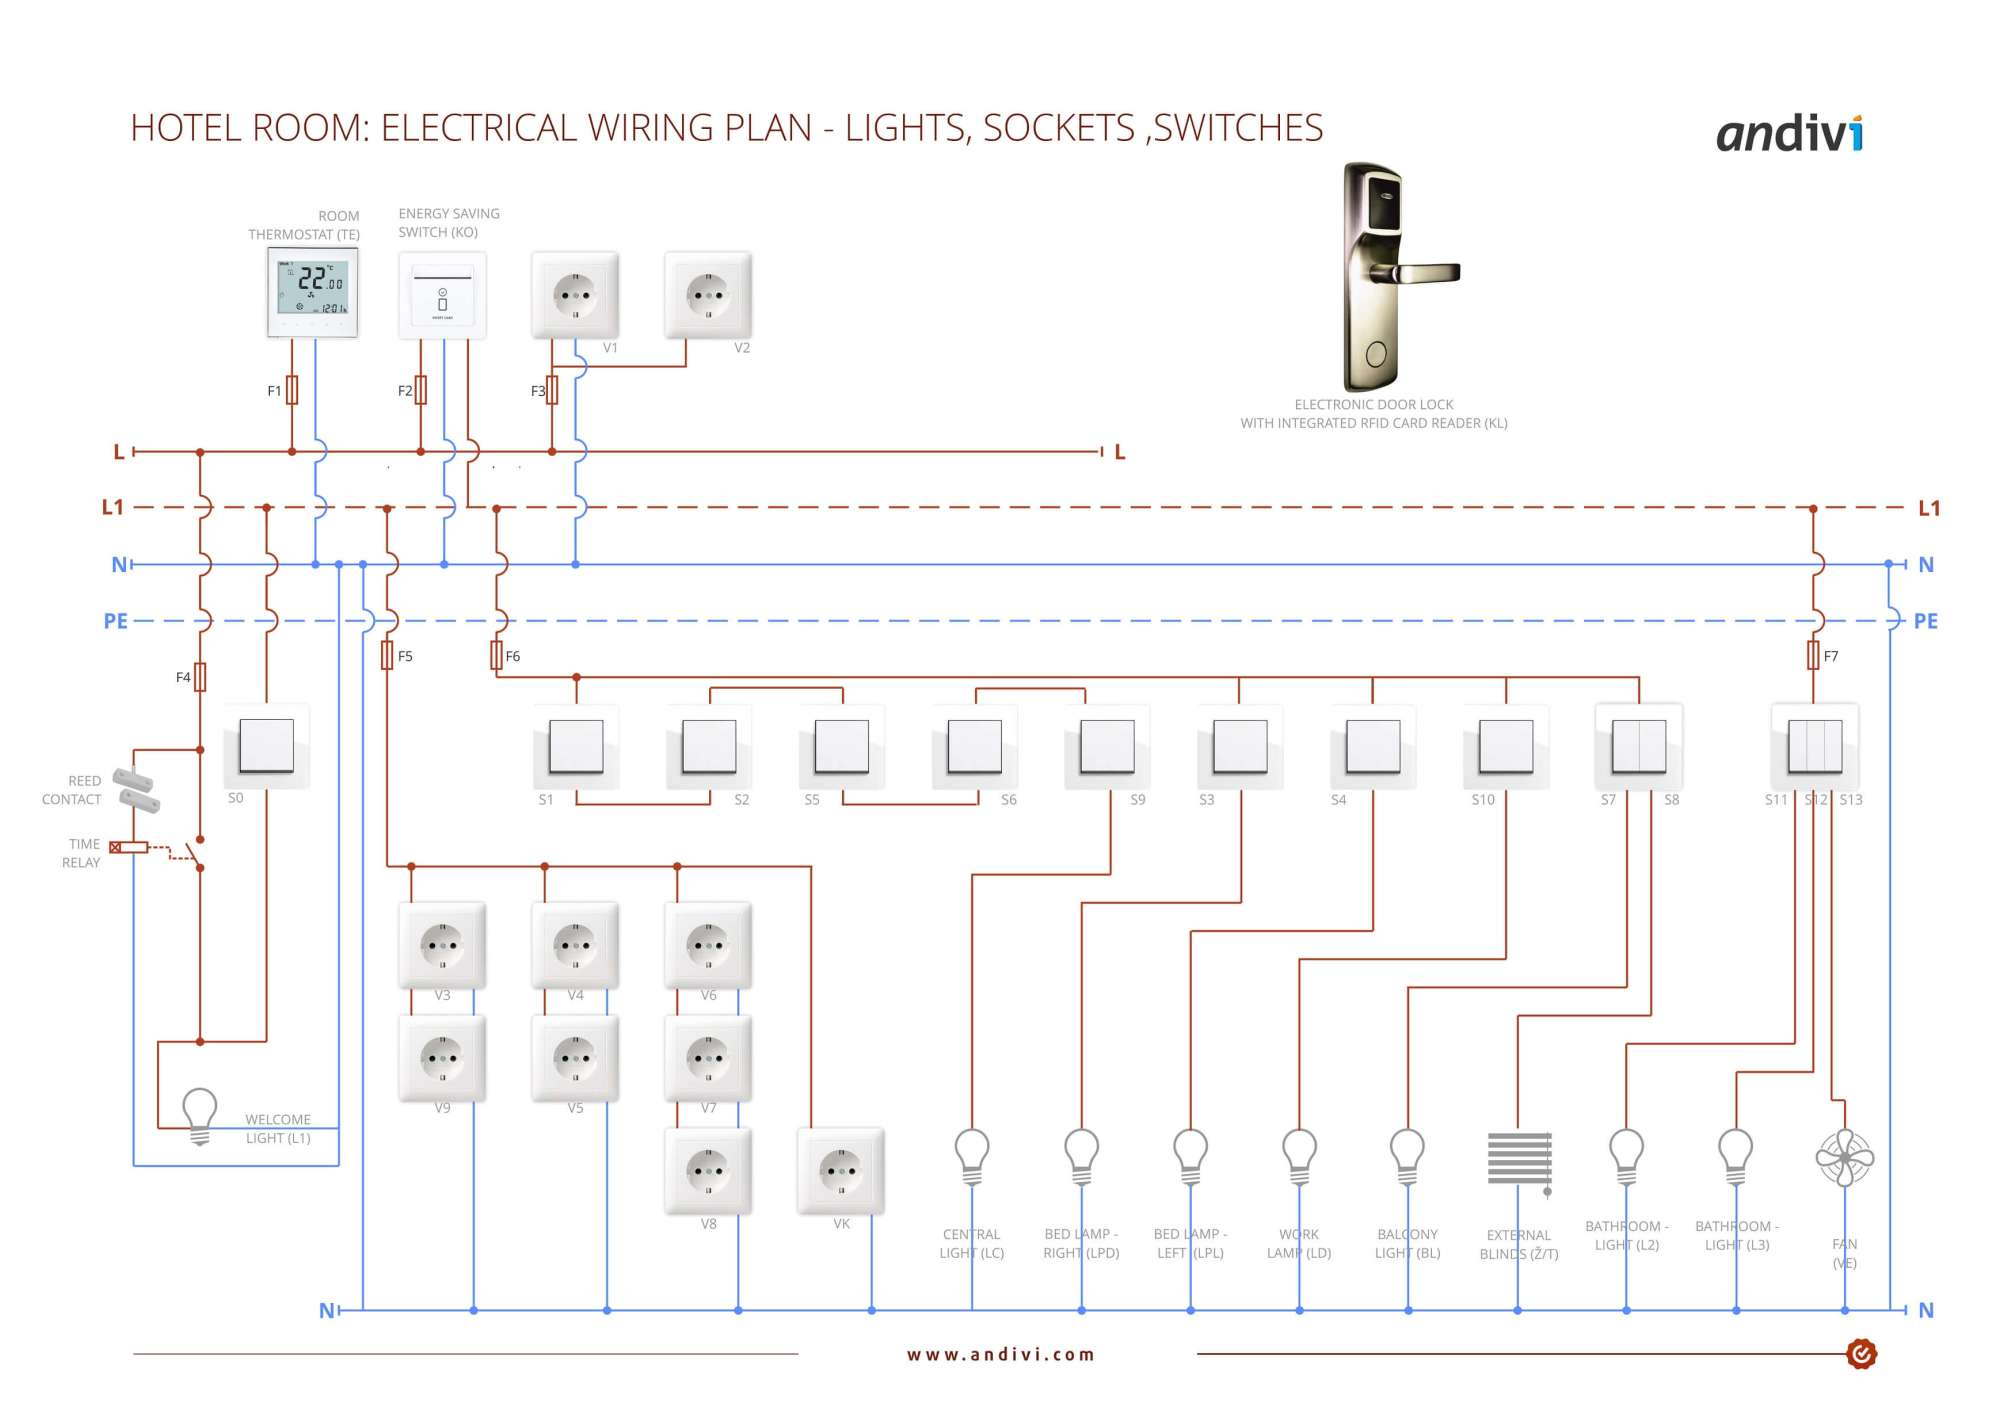 hight resolution of white rodgers solenoid wiring diagram club car wiring diagramwhite rodgers solenoid wiring diagram schematic diagramwhite rodgers